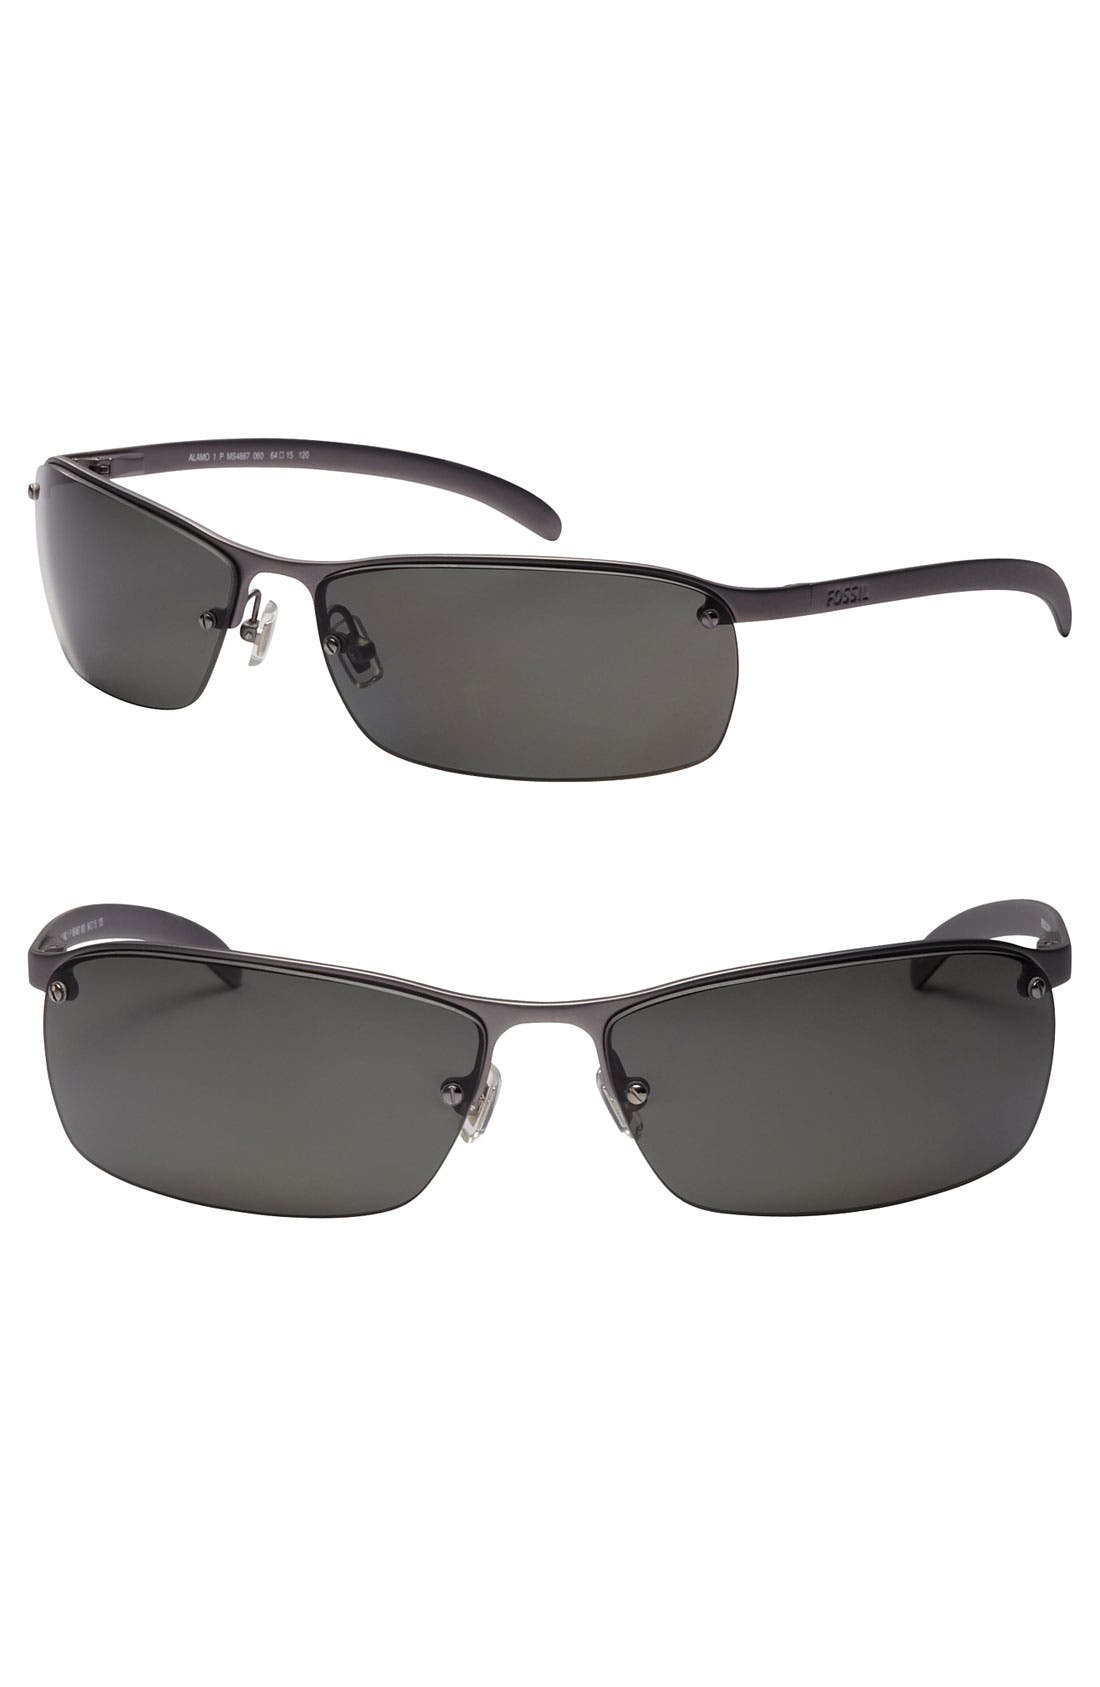 Main Image - Fossil 'Allen' 64mm Polarized Sunglasses